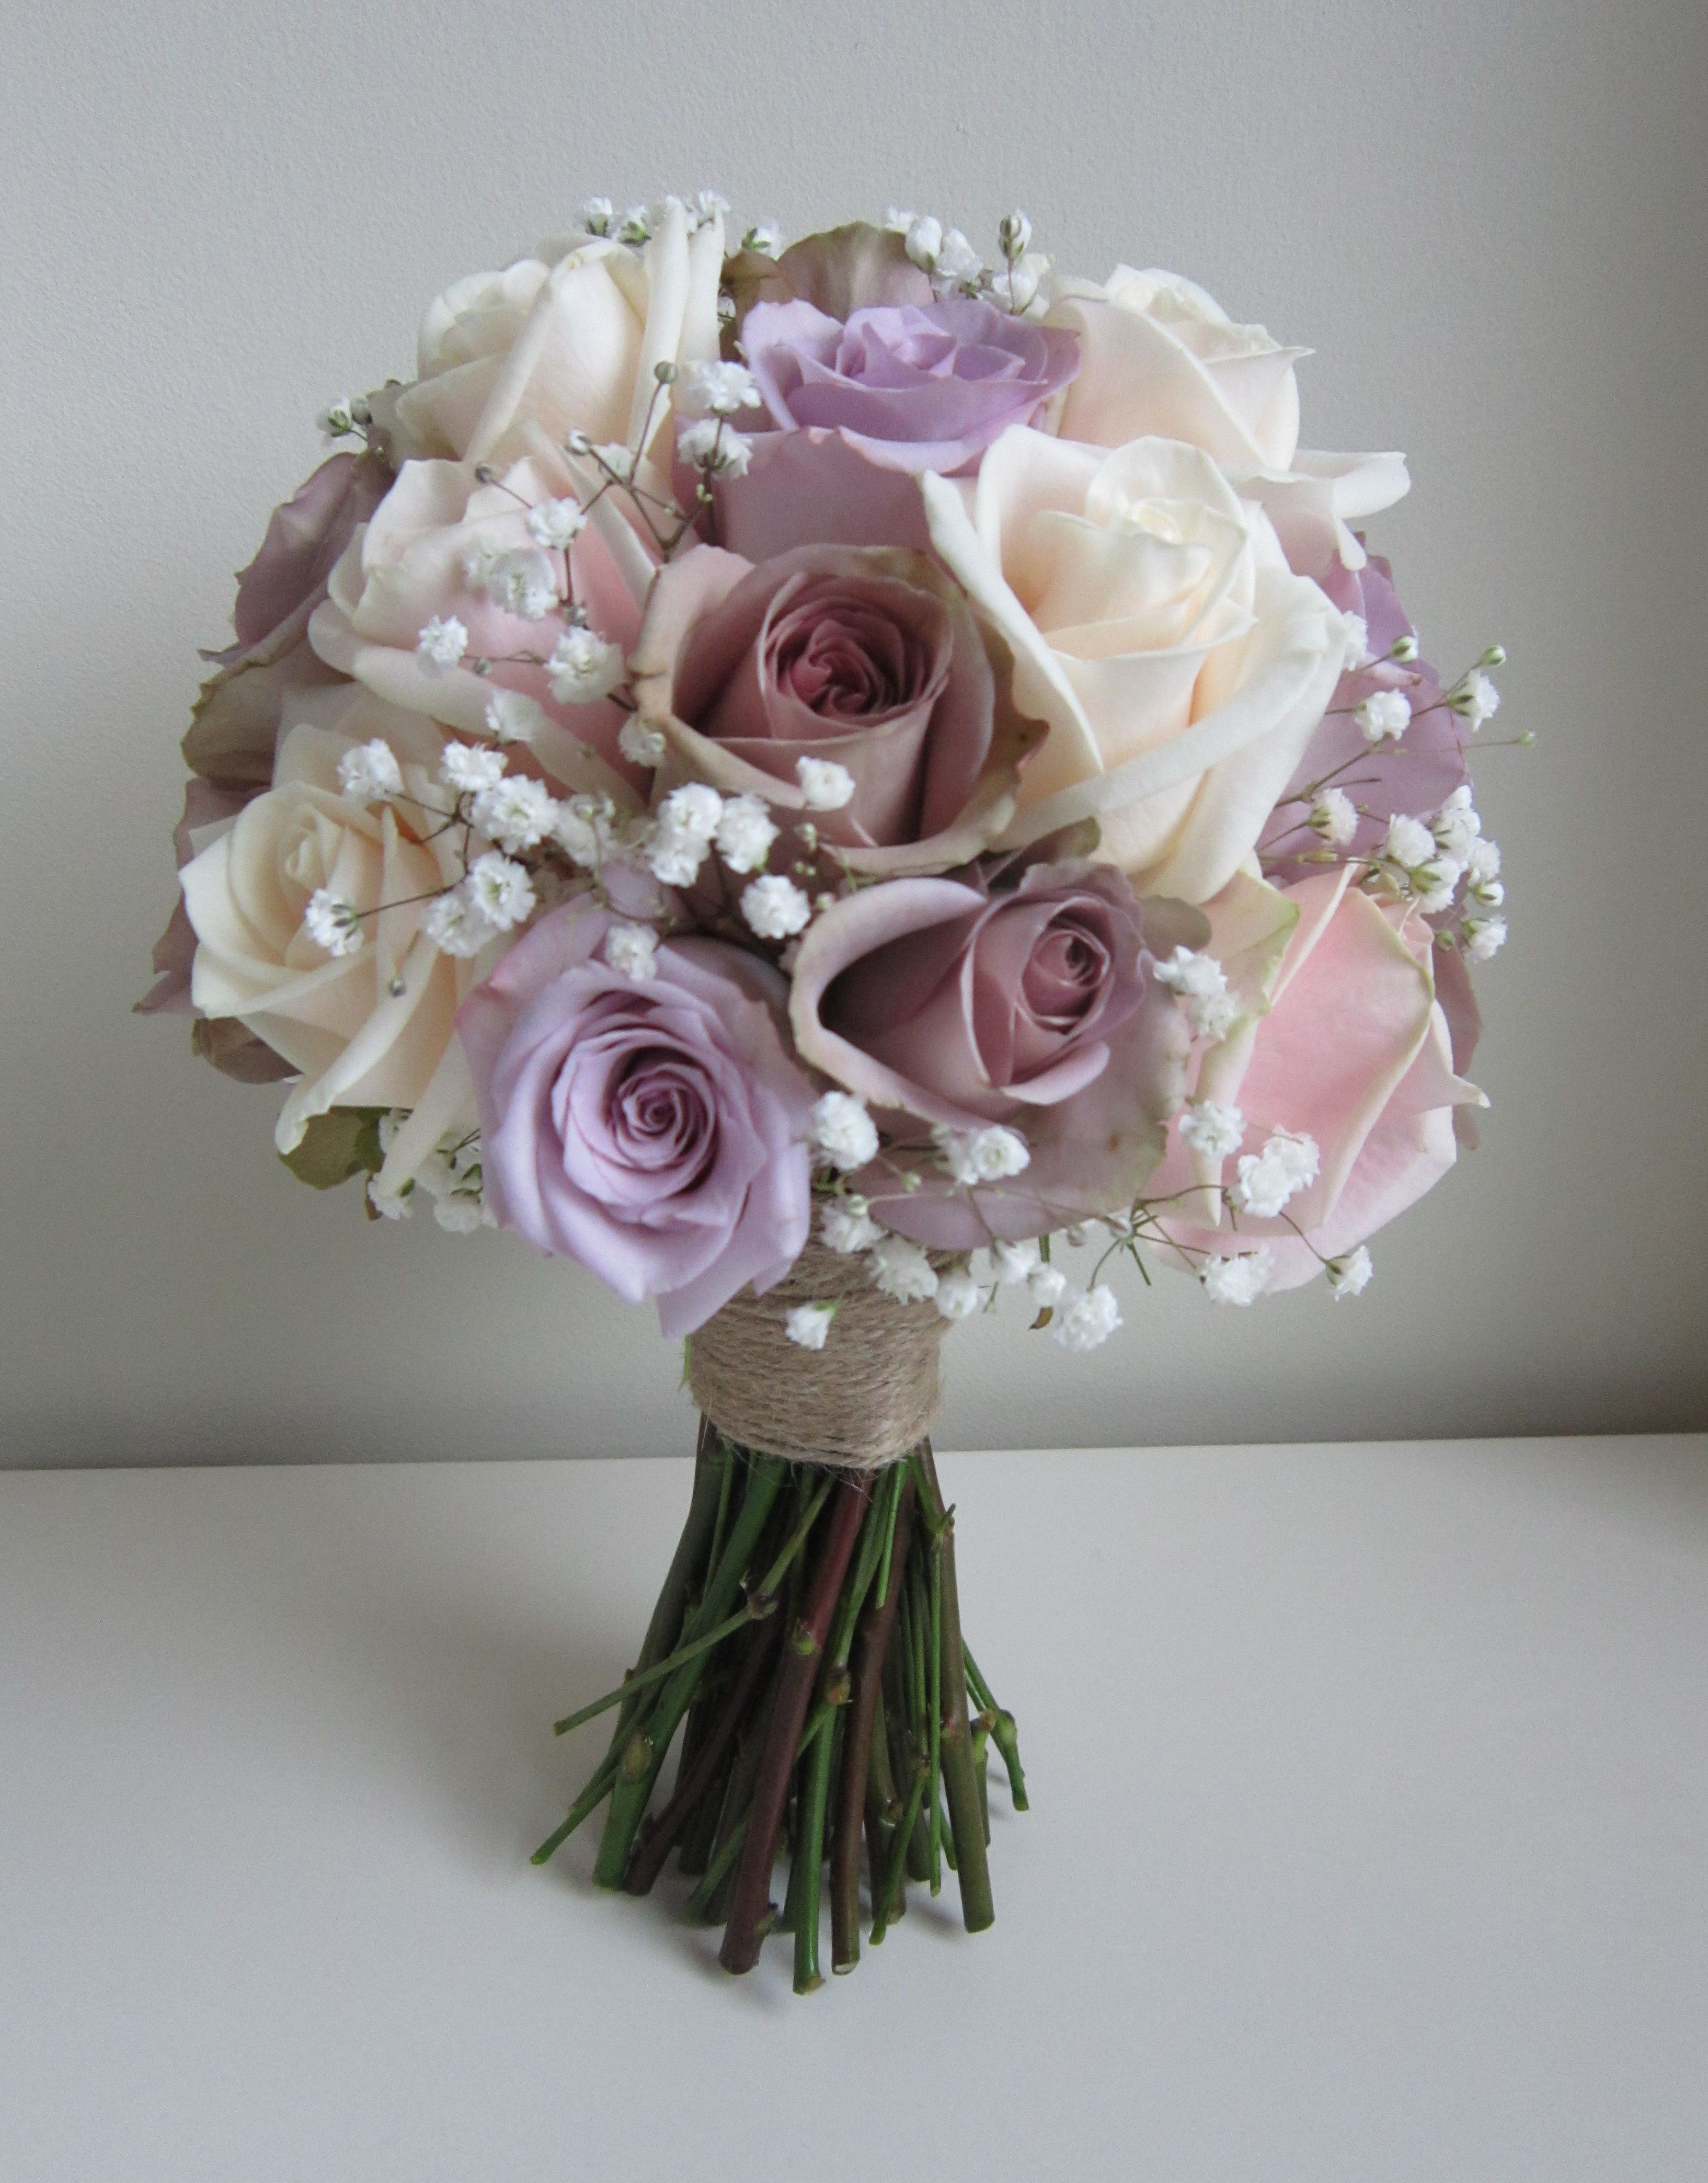 Lilac amnesia roses with lilac ocean song roses and babys breath lilac amnesia roses with lilac ocean song roses and babys breath gypsophilia brides bouquet hand izmirmasajfo Gallery